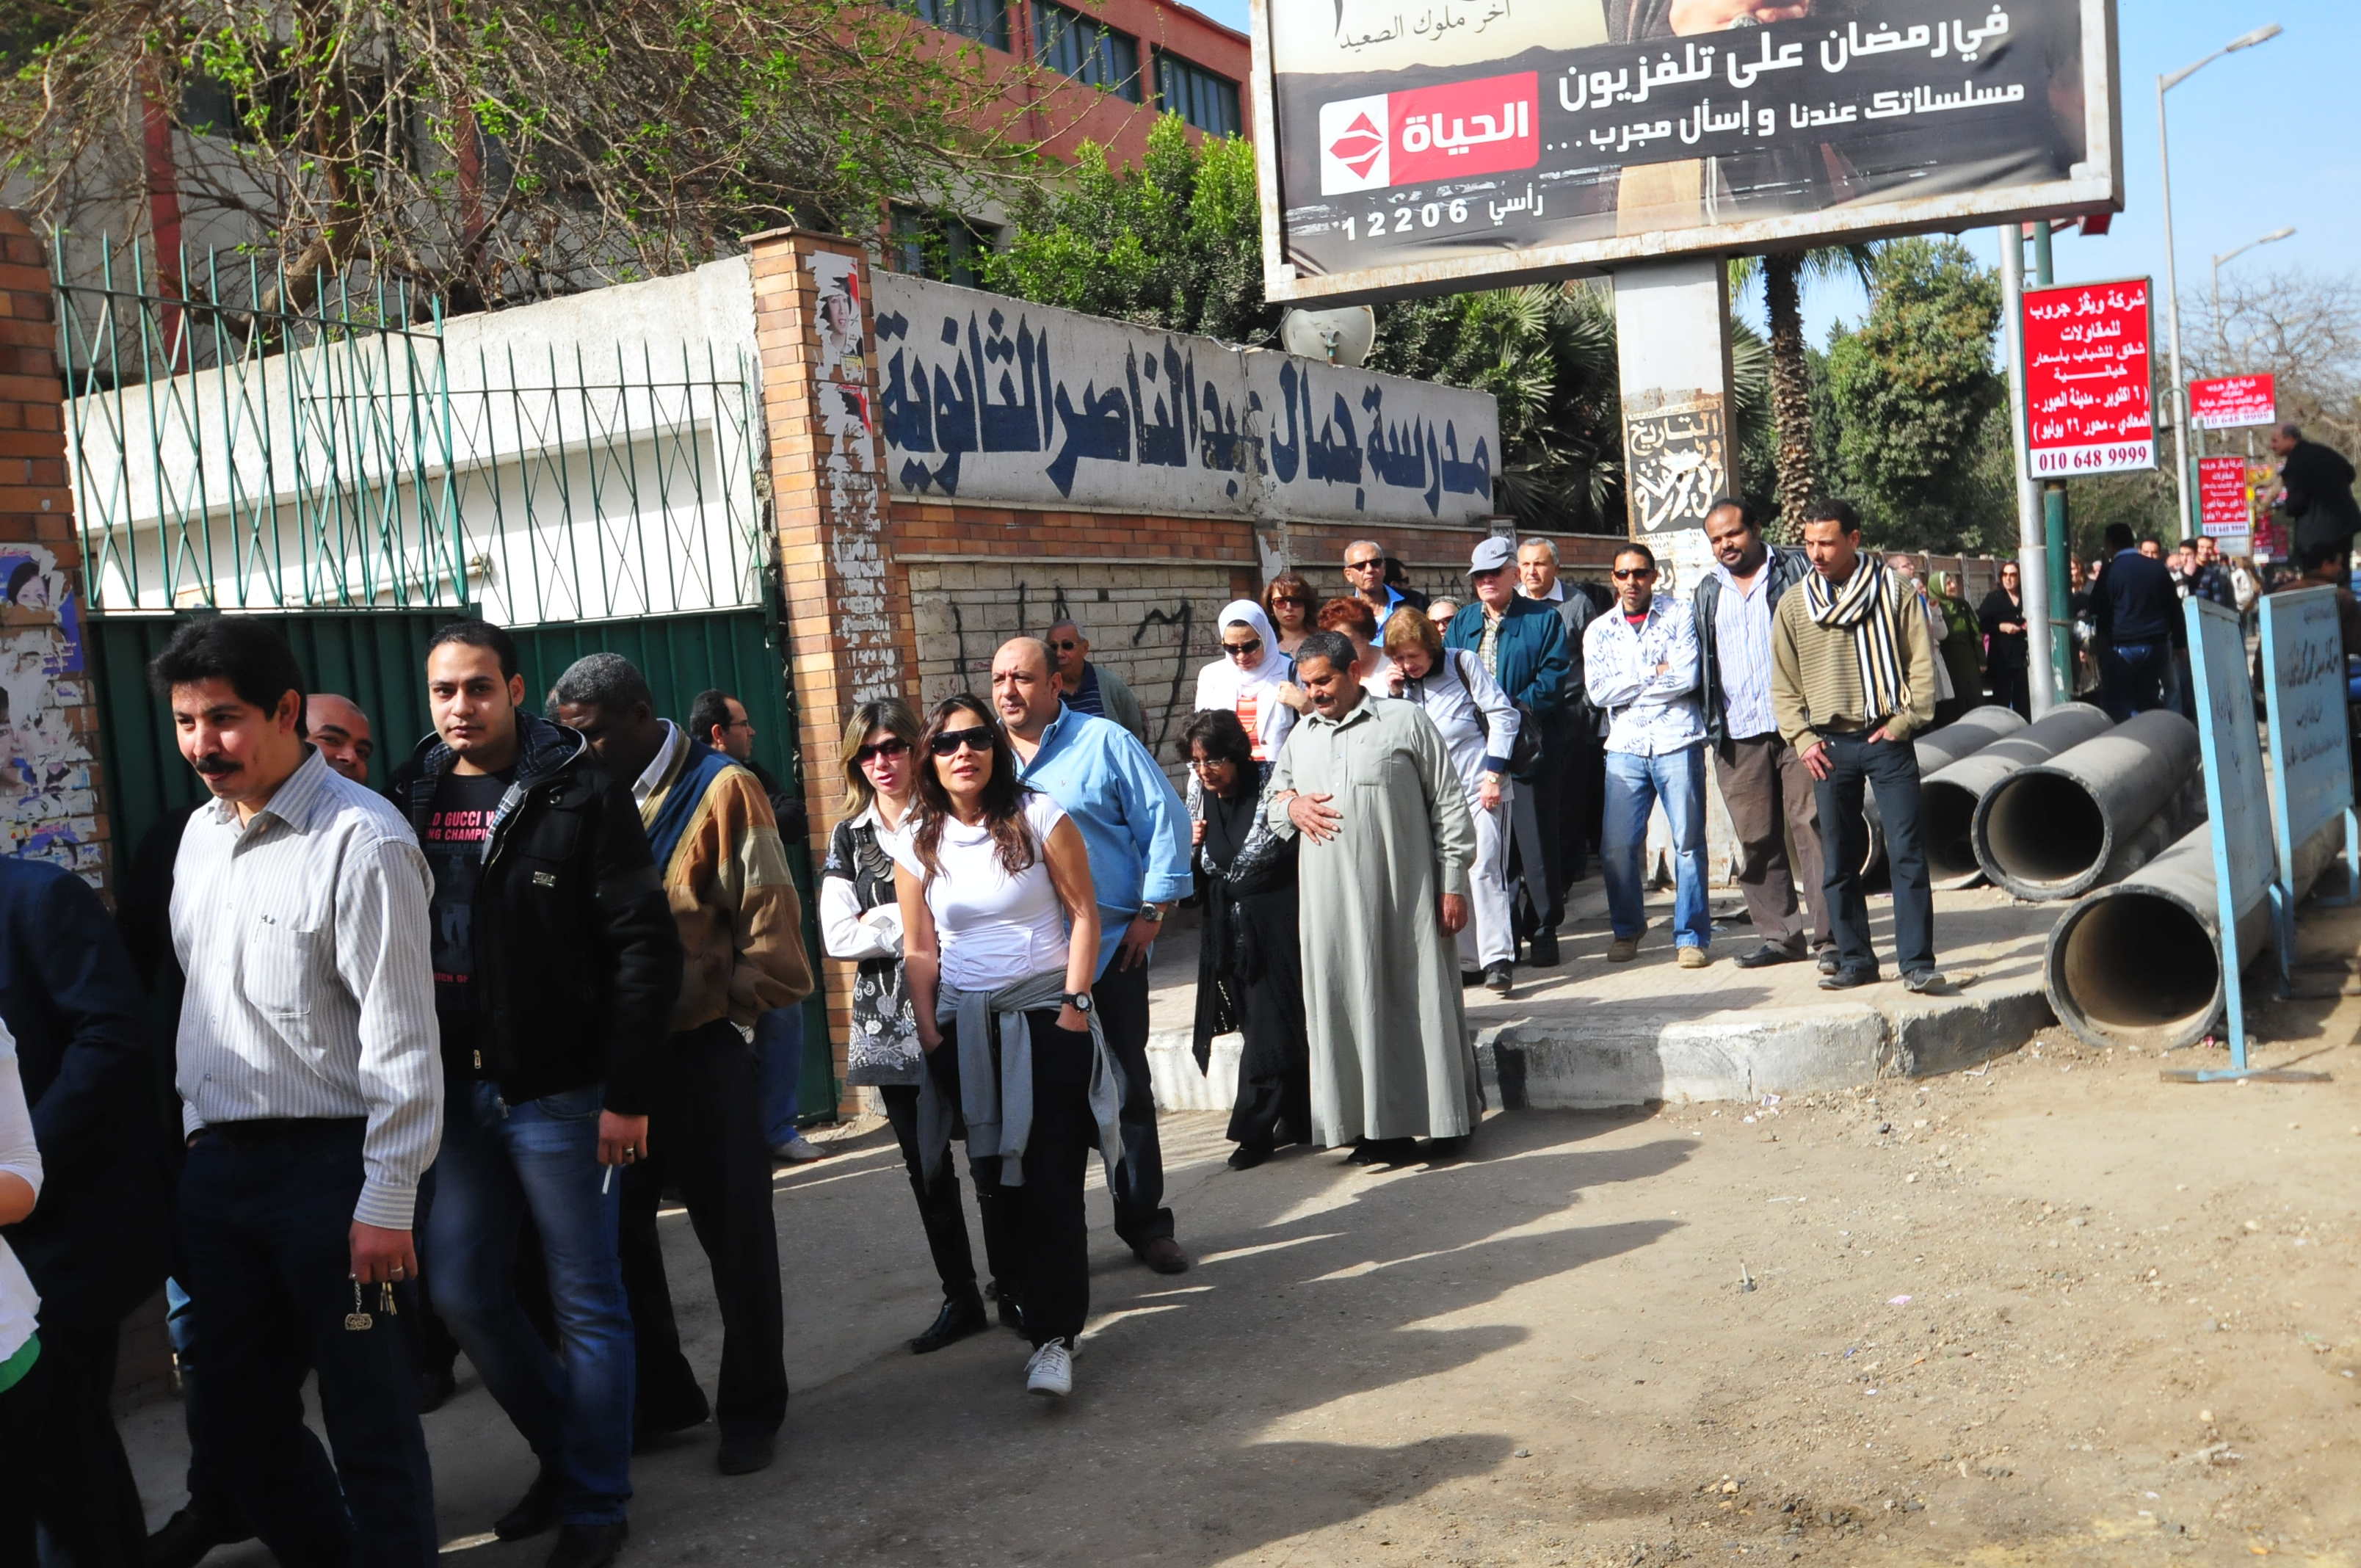 Egyptians flocked to the polling station in March 2011 to vote of the first referendum after 25 January revolution. Registration for Egyptians living abroad is set to begin in the coming December in preparation to vote on the current constitution being drafted. (Hassan Ibrahim/ DNE File Photo)